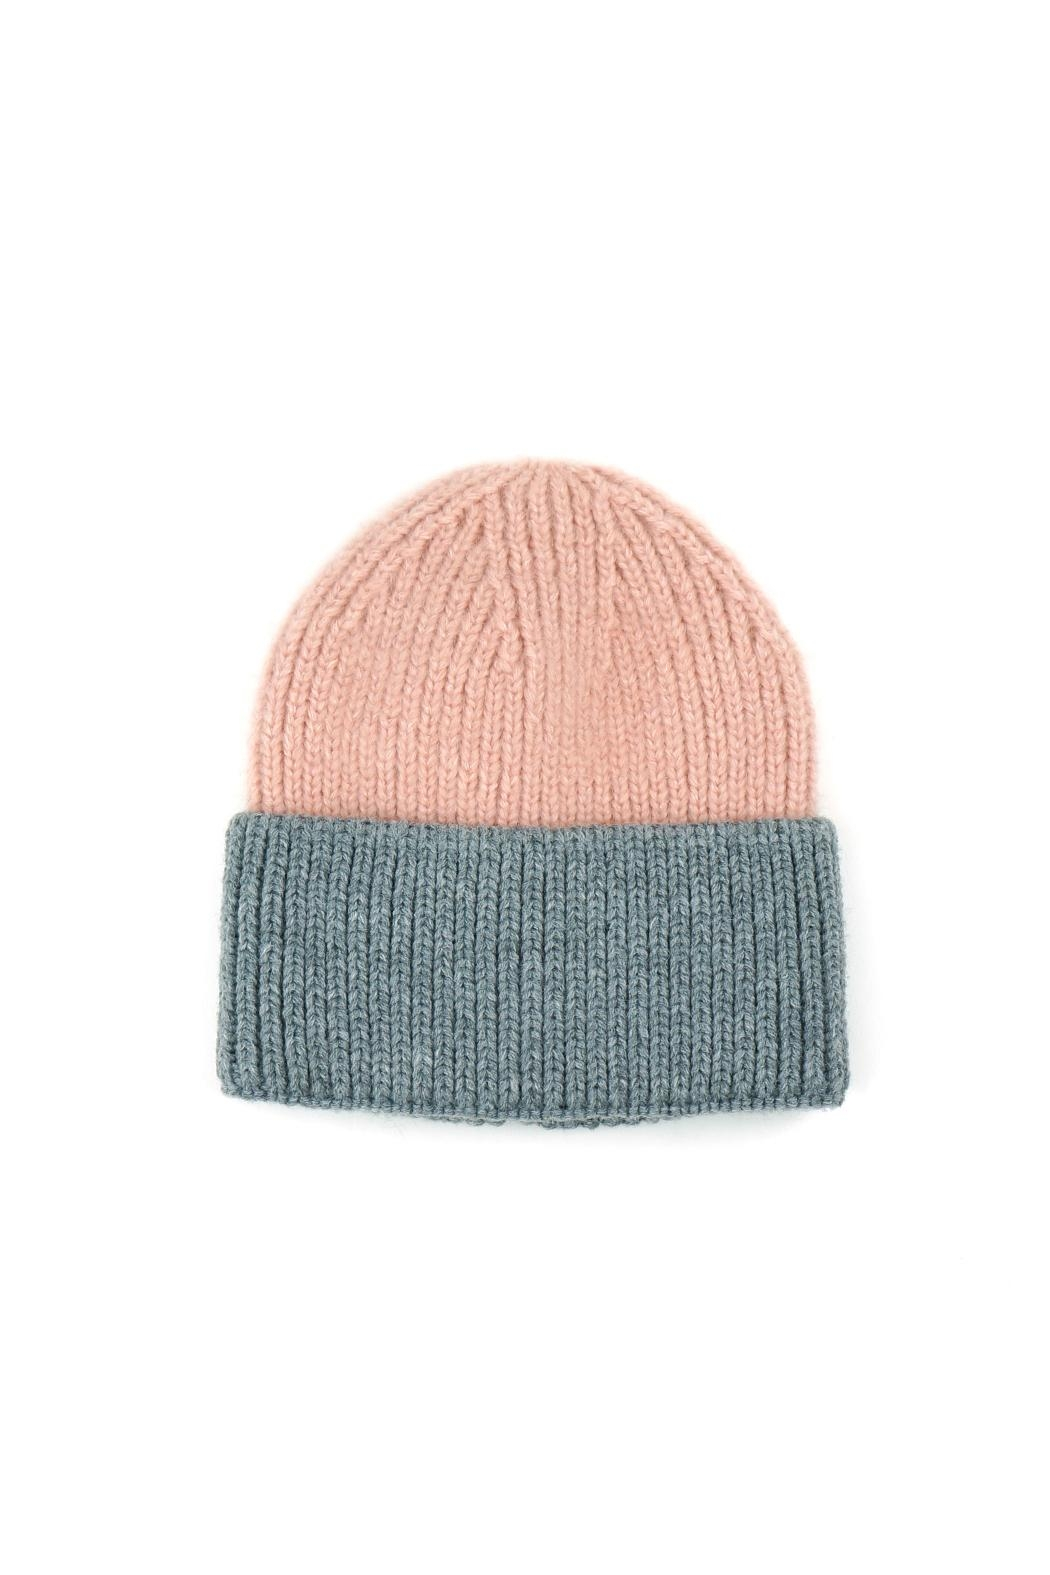 Riah Fashion Wool-Blended-Two-Tone-Solid-Beanie - Side Cropped Image